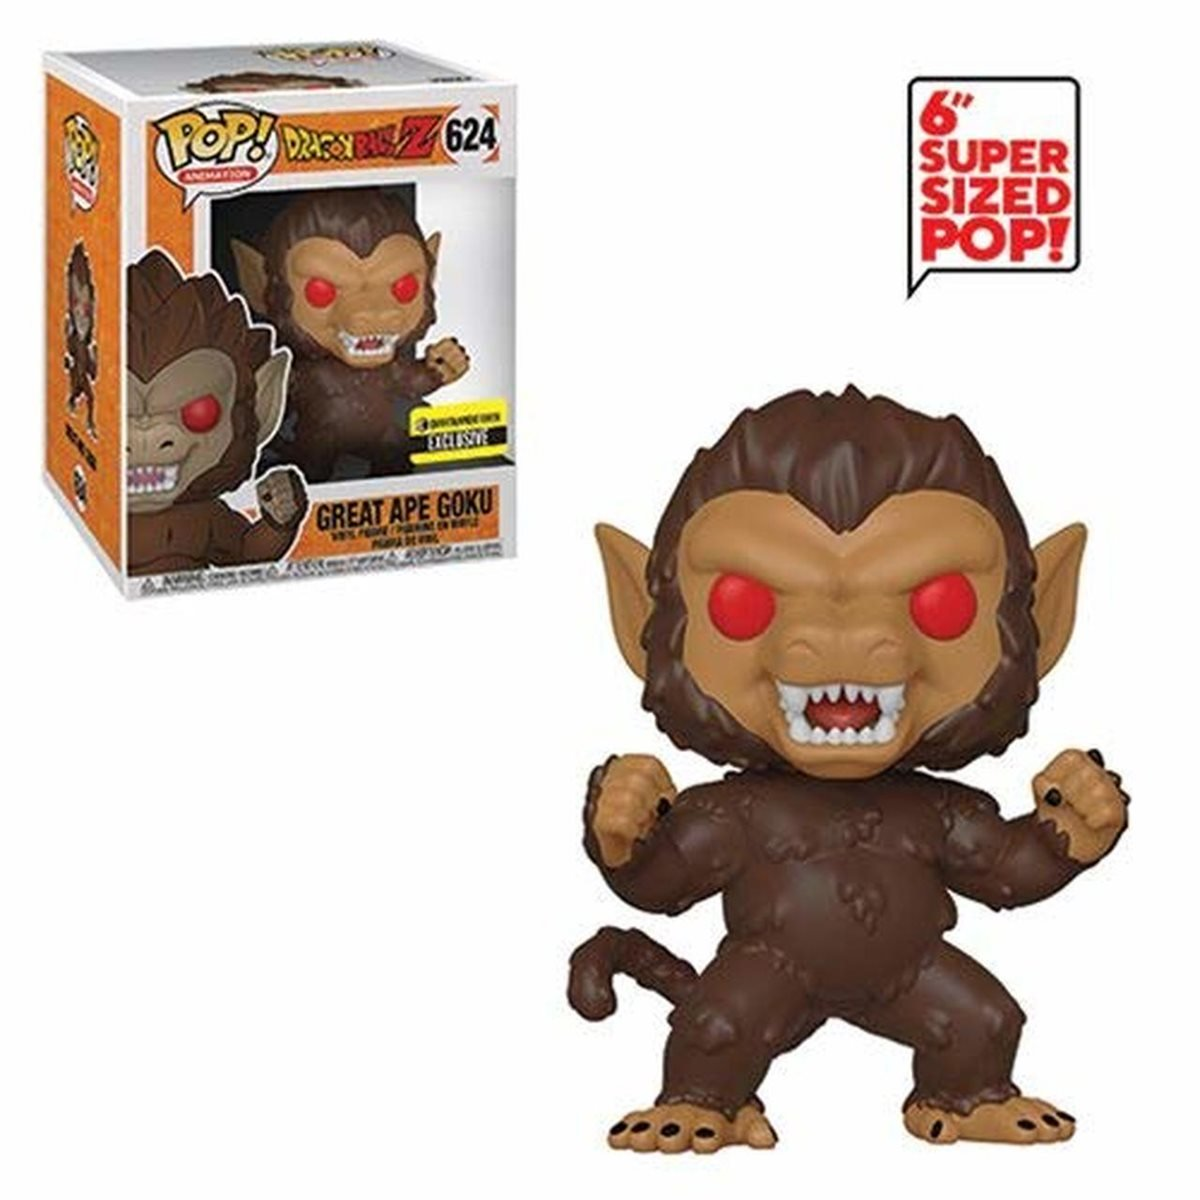 DBZ - Great Ape Goku 6-Inch Pop! Vinyl Figure #624